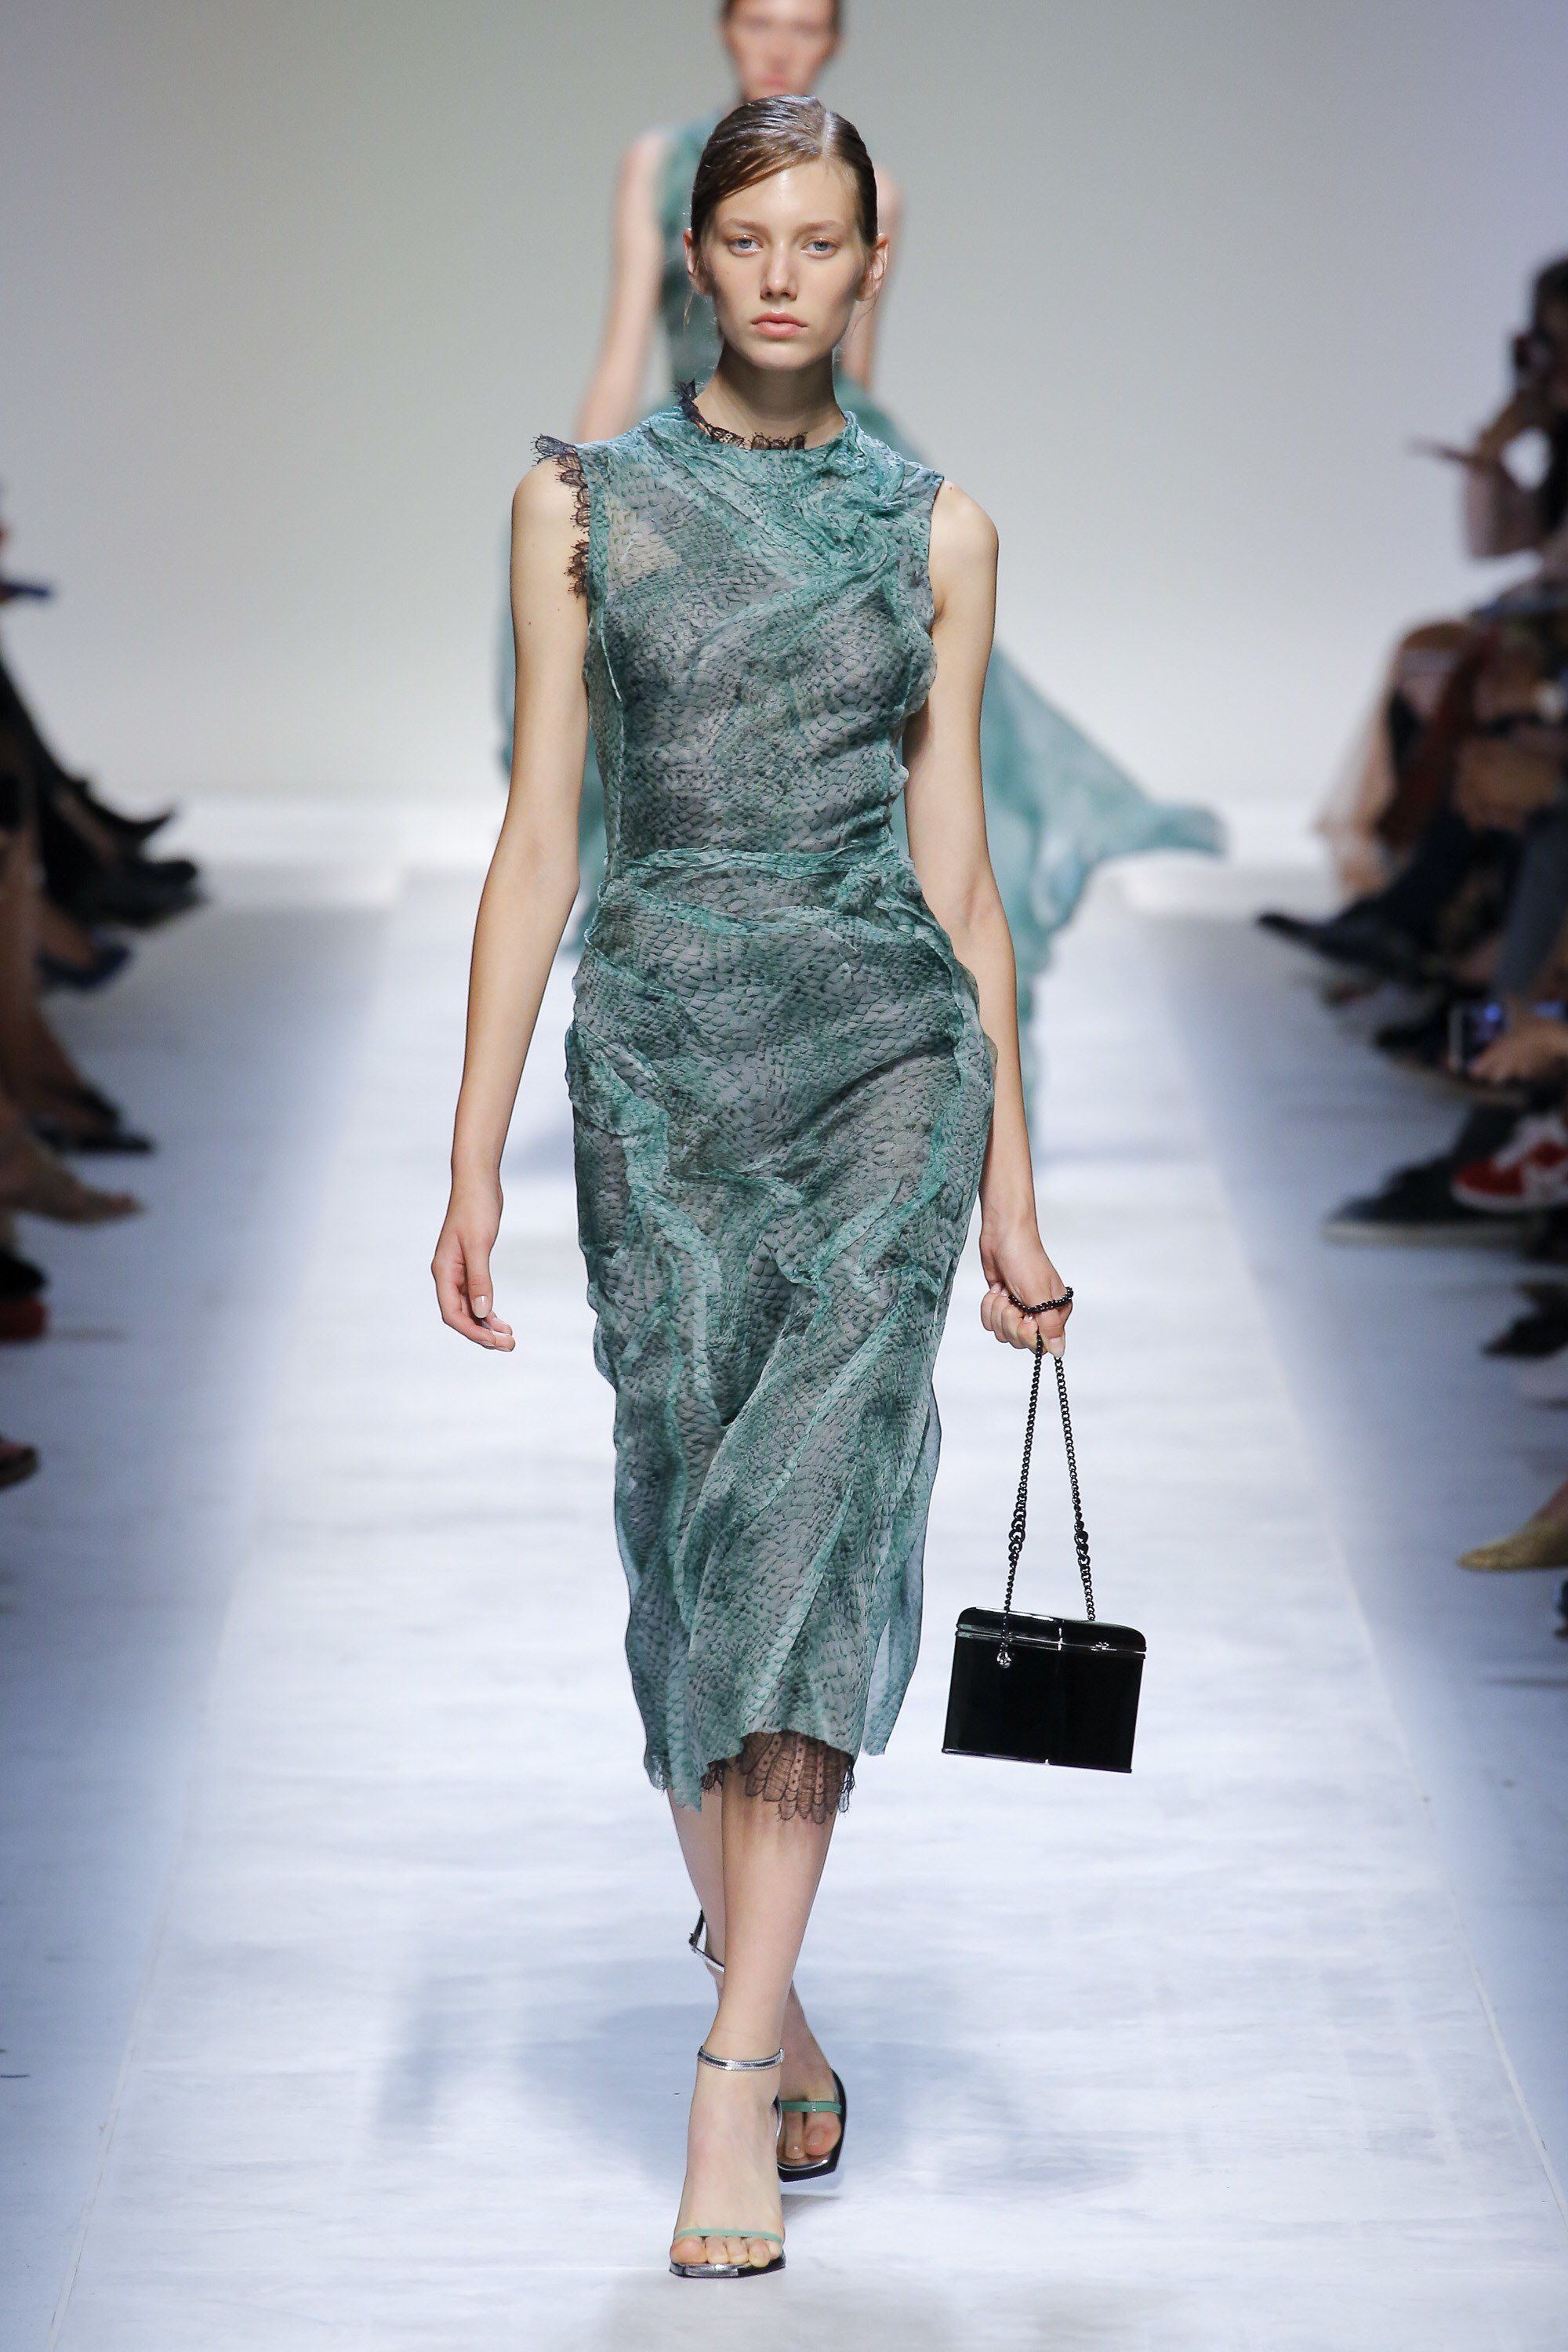 Lace dress with shorts underneath september 2019 Ermanno Scervino Spring  ReadytoWear Fashion Show Collection